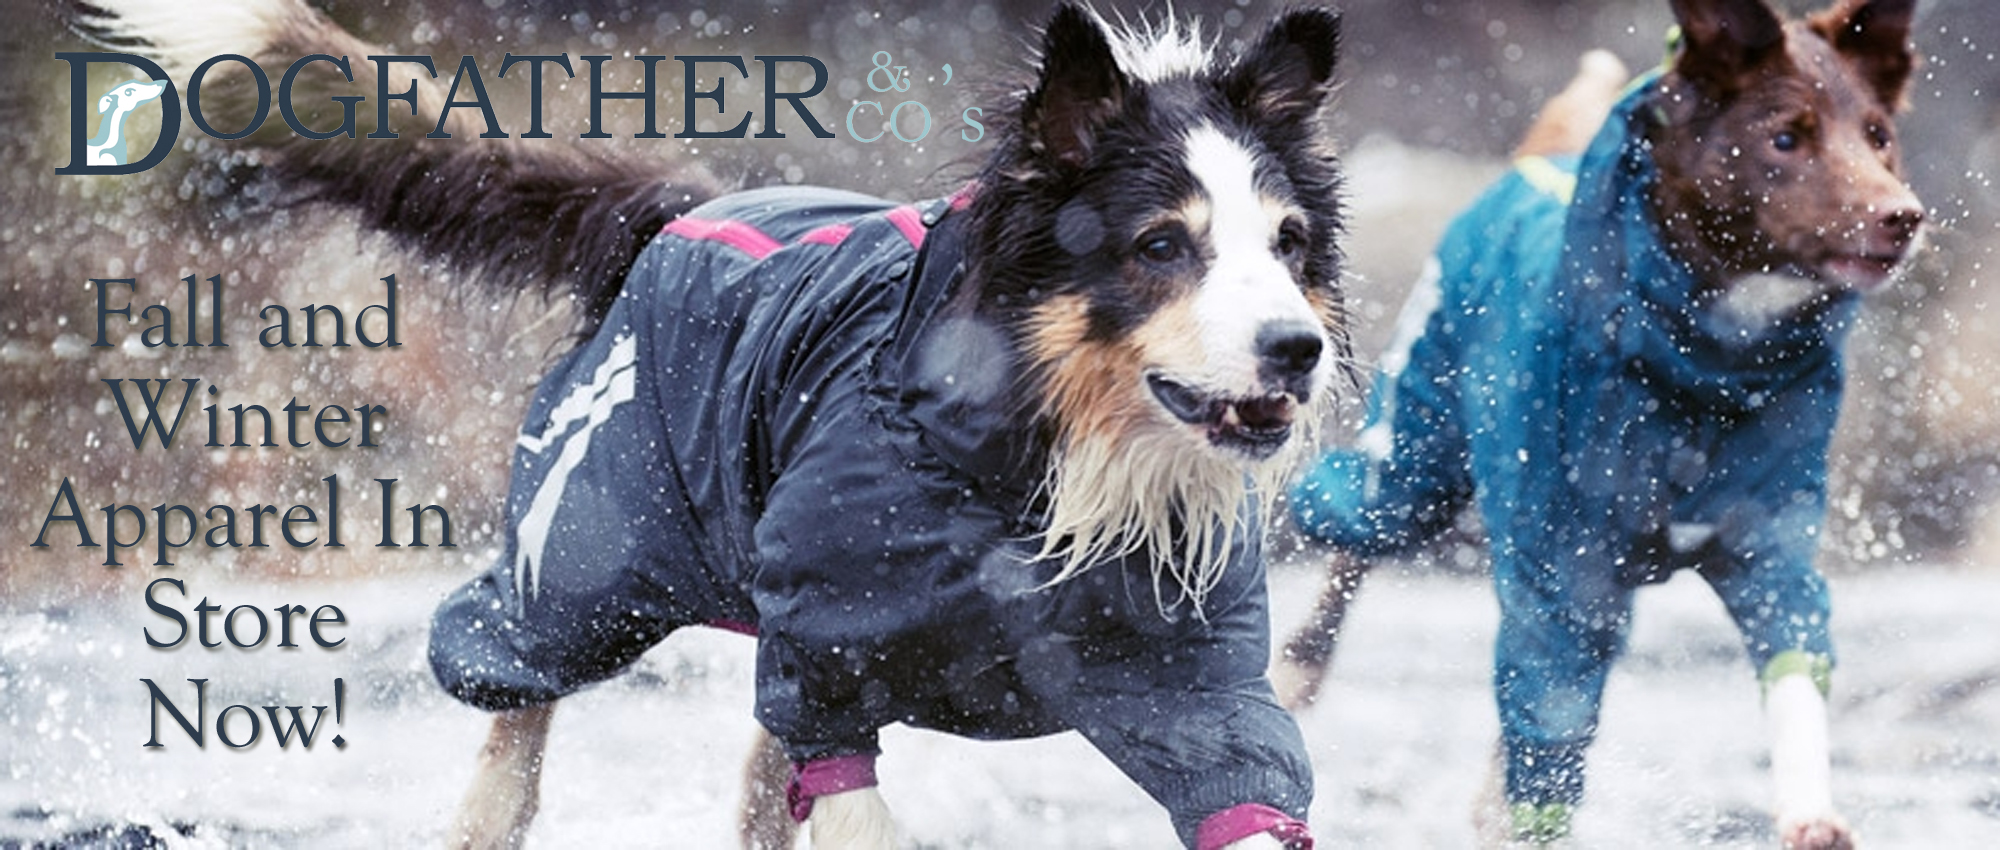 Winter Jackets Dogfather And Co Canine Retail And Dog Grooming